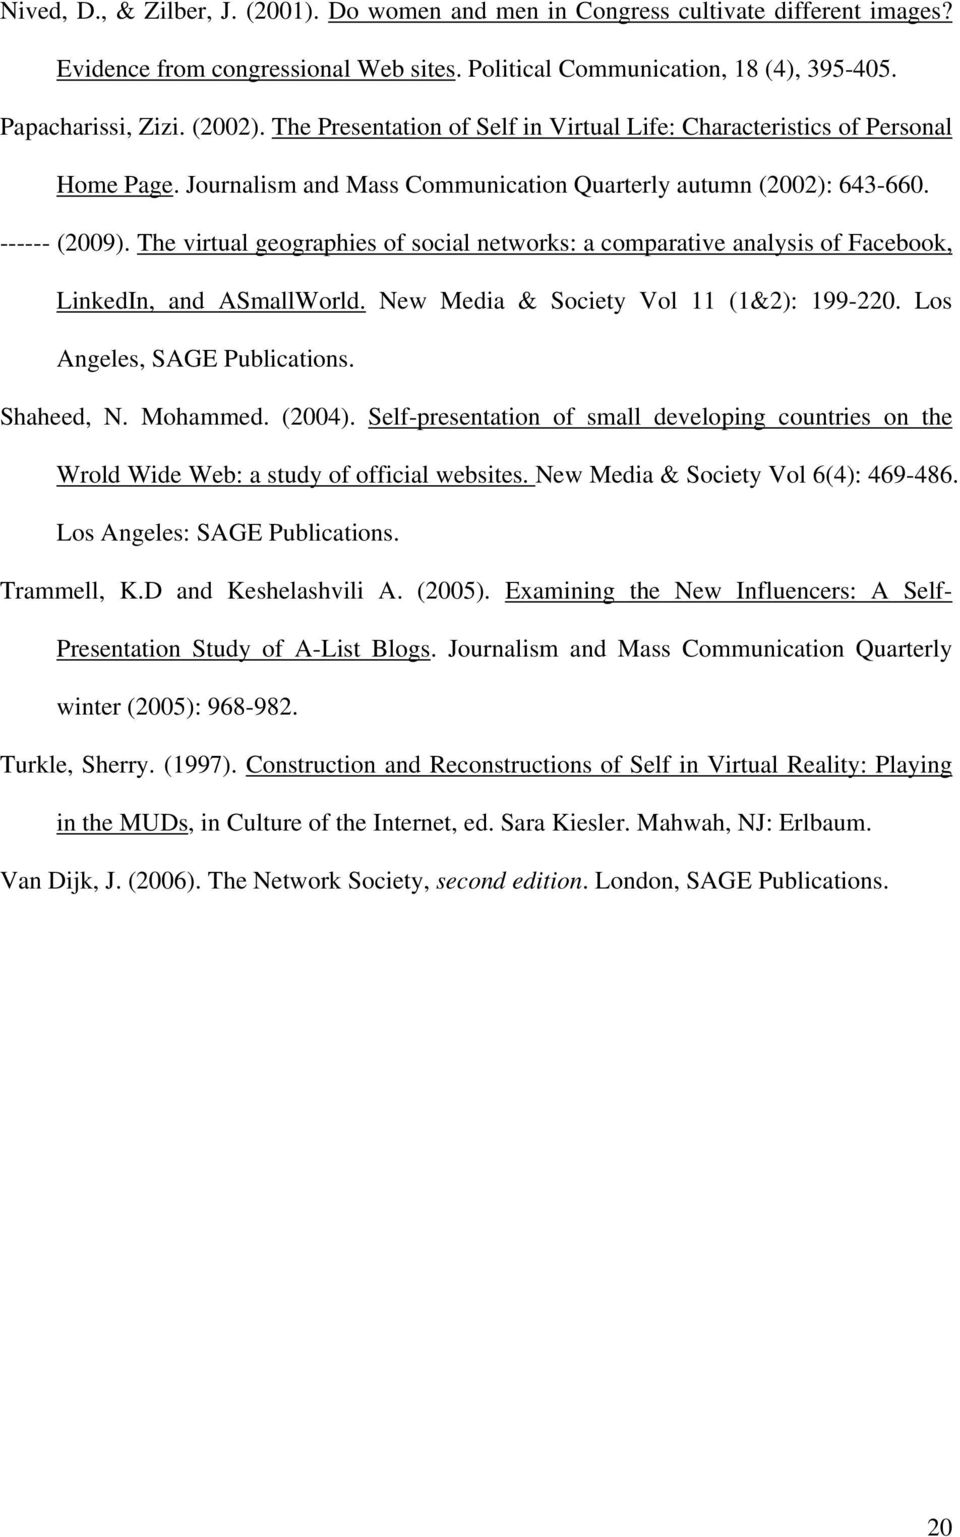 The virtual geographies of social networks: a comparative analysis of Facebook, LinkedIn, and ASmallWorld. New Media & Society Vol 11 (1&2): 199-220. Los Angeles, SAGE Publications. Shaheed, N.